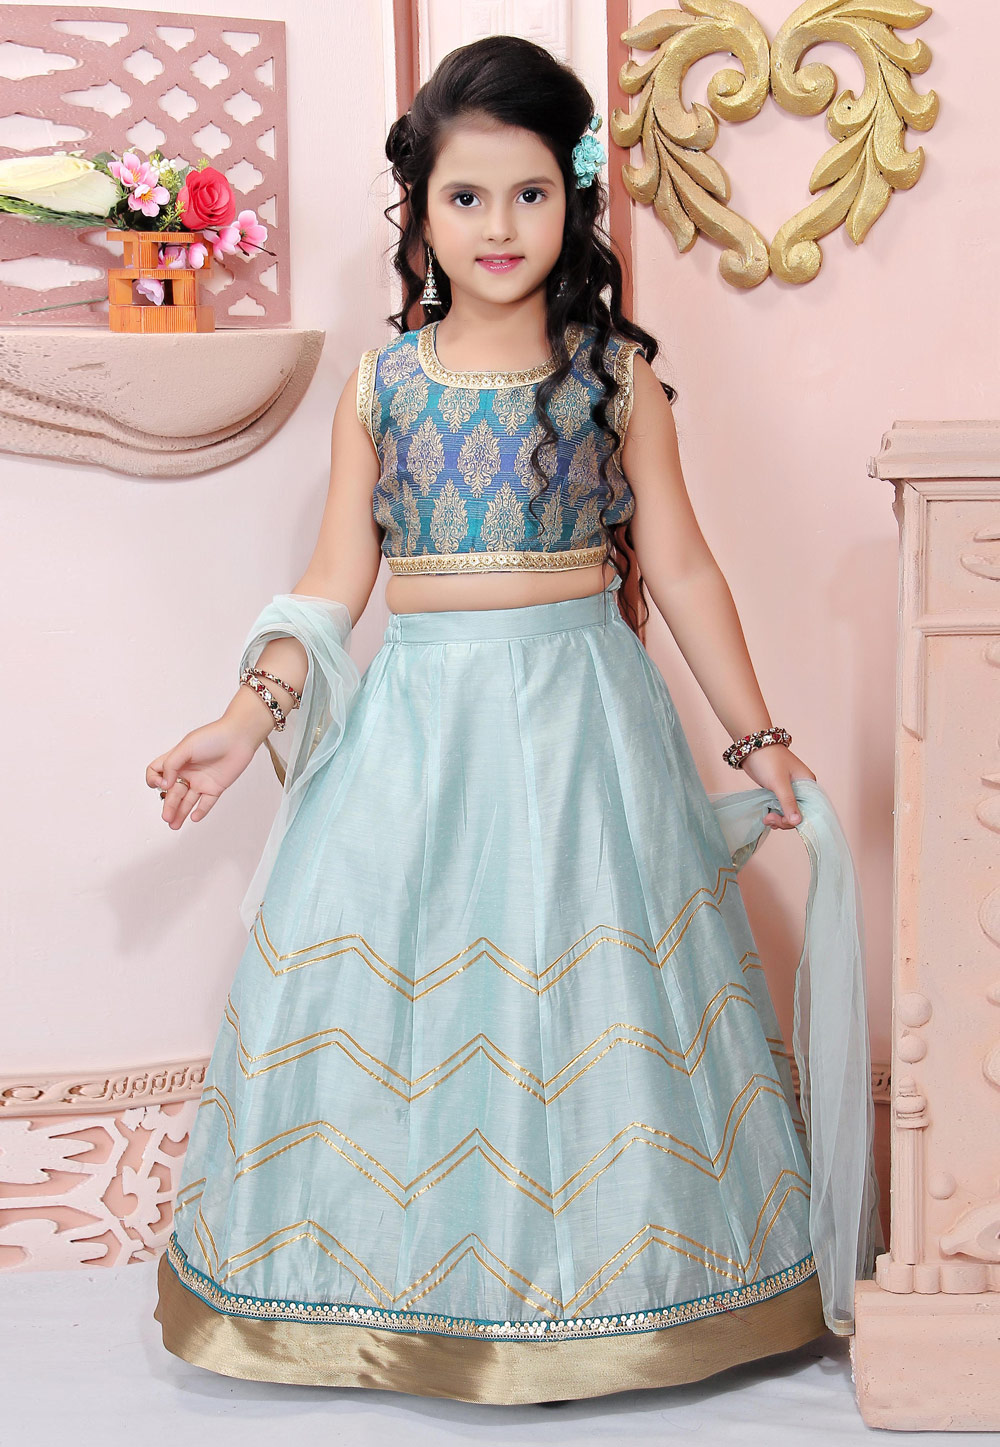 Sky Blue Chanderi Silk Readymade Kids Lehenga Choli 198374